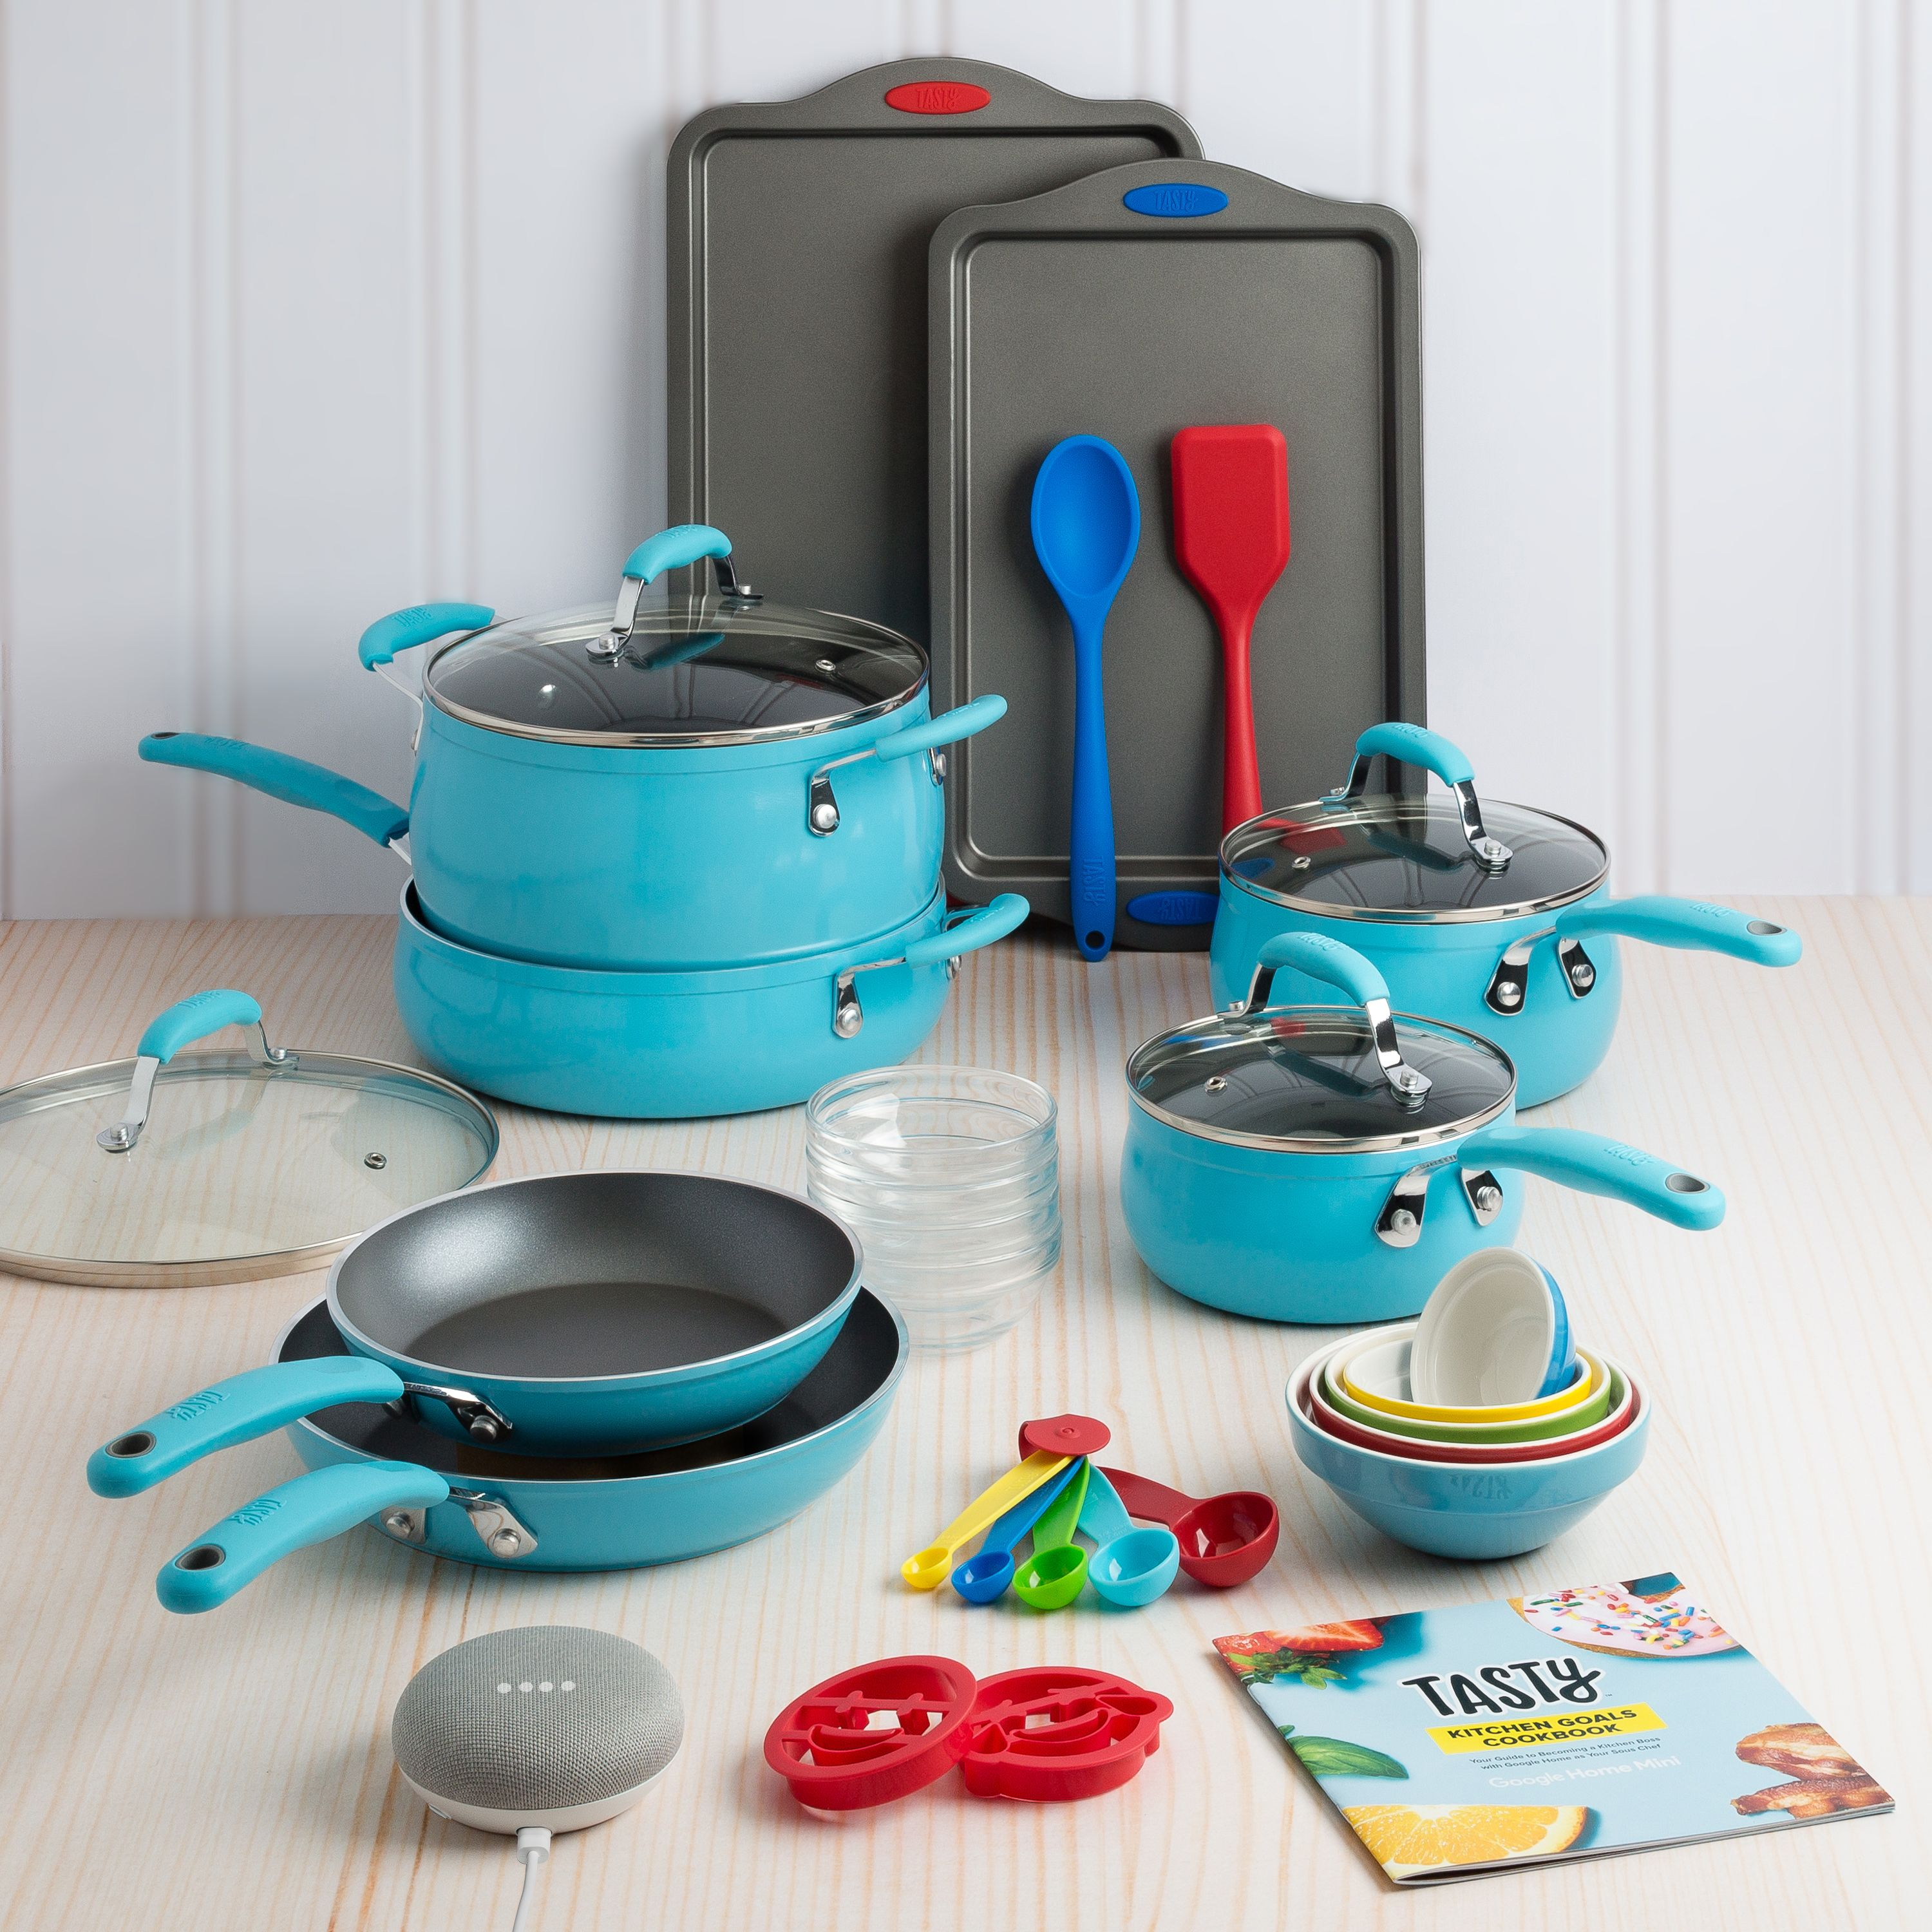 Tasty 30 Piece Non-Stick Cookware Set + Google Home Mini - Blue